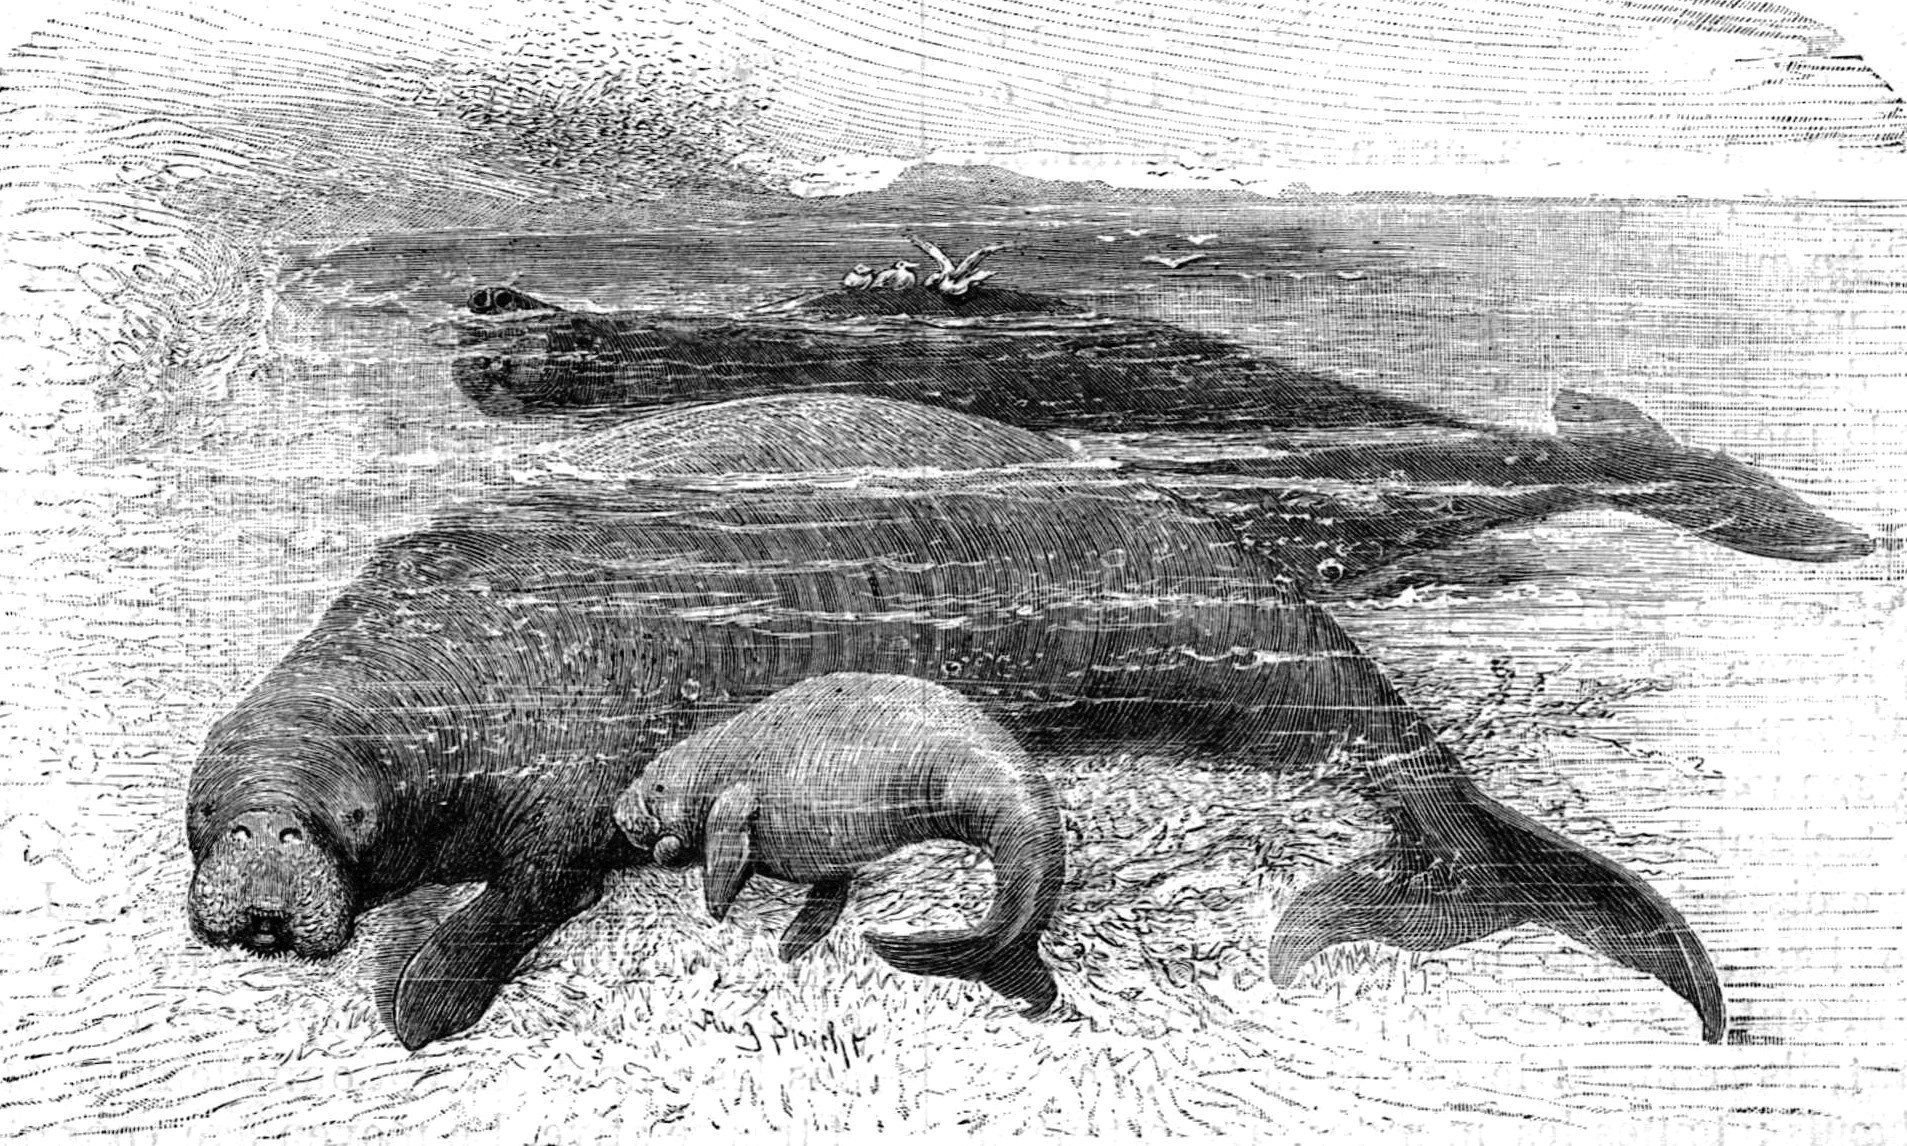 An 1898 drawing of a group of Steller's sea cows ( Hydrodamalis gigas ).